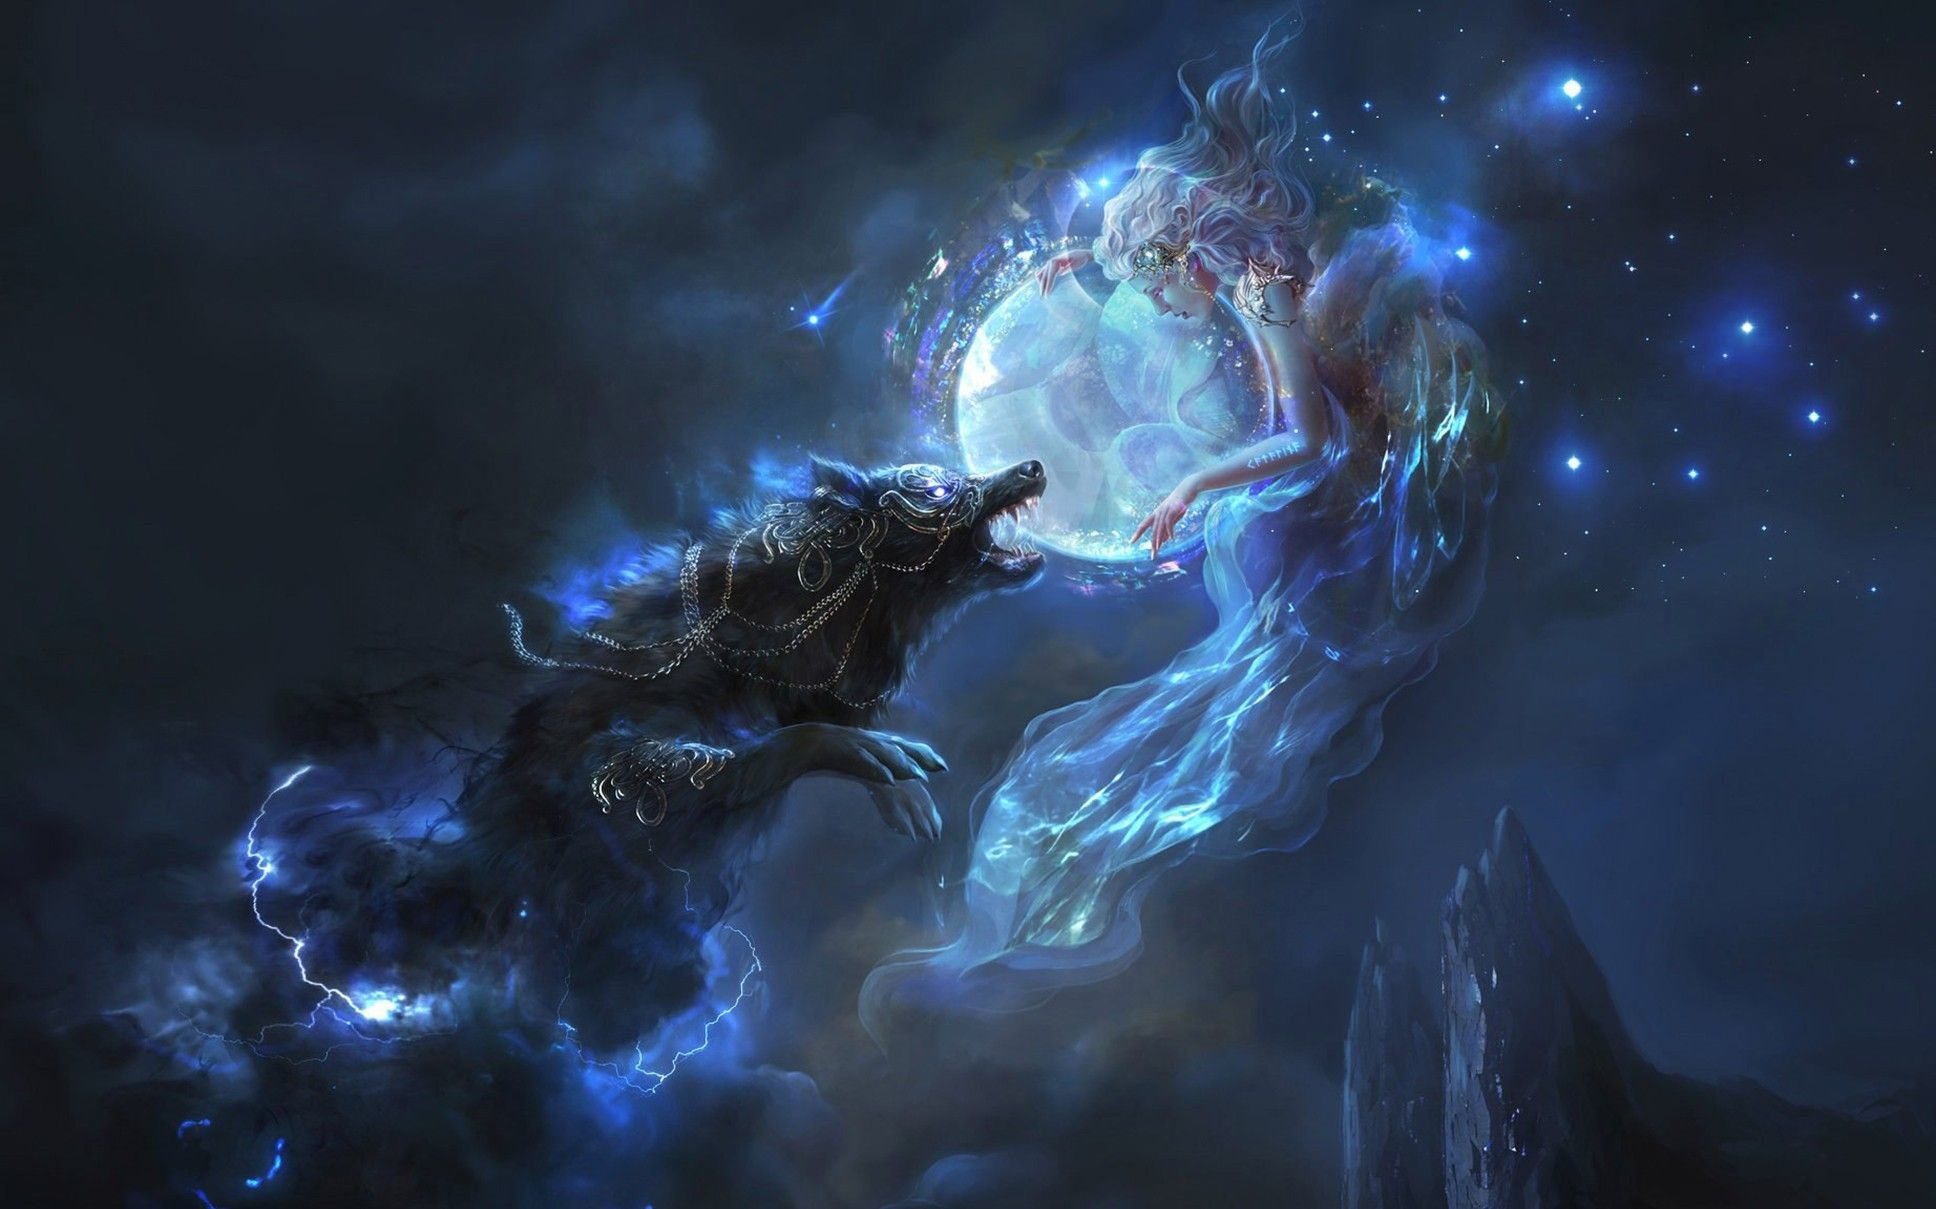 1936x1209 wolf fantasy girl fantasy art artwork wallpaper and background